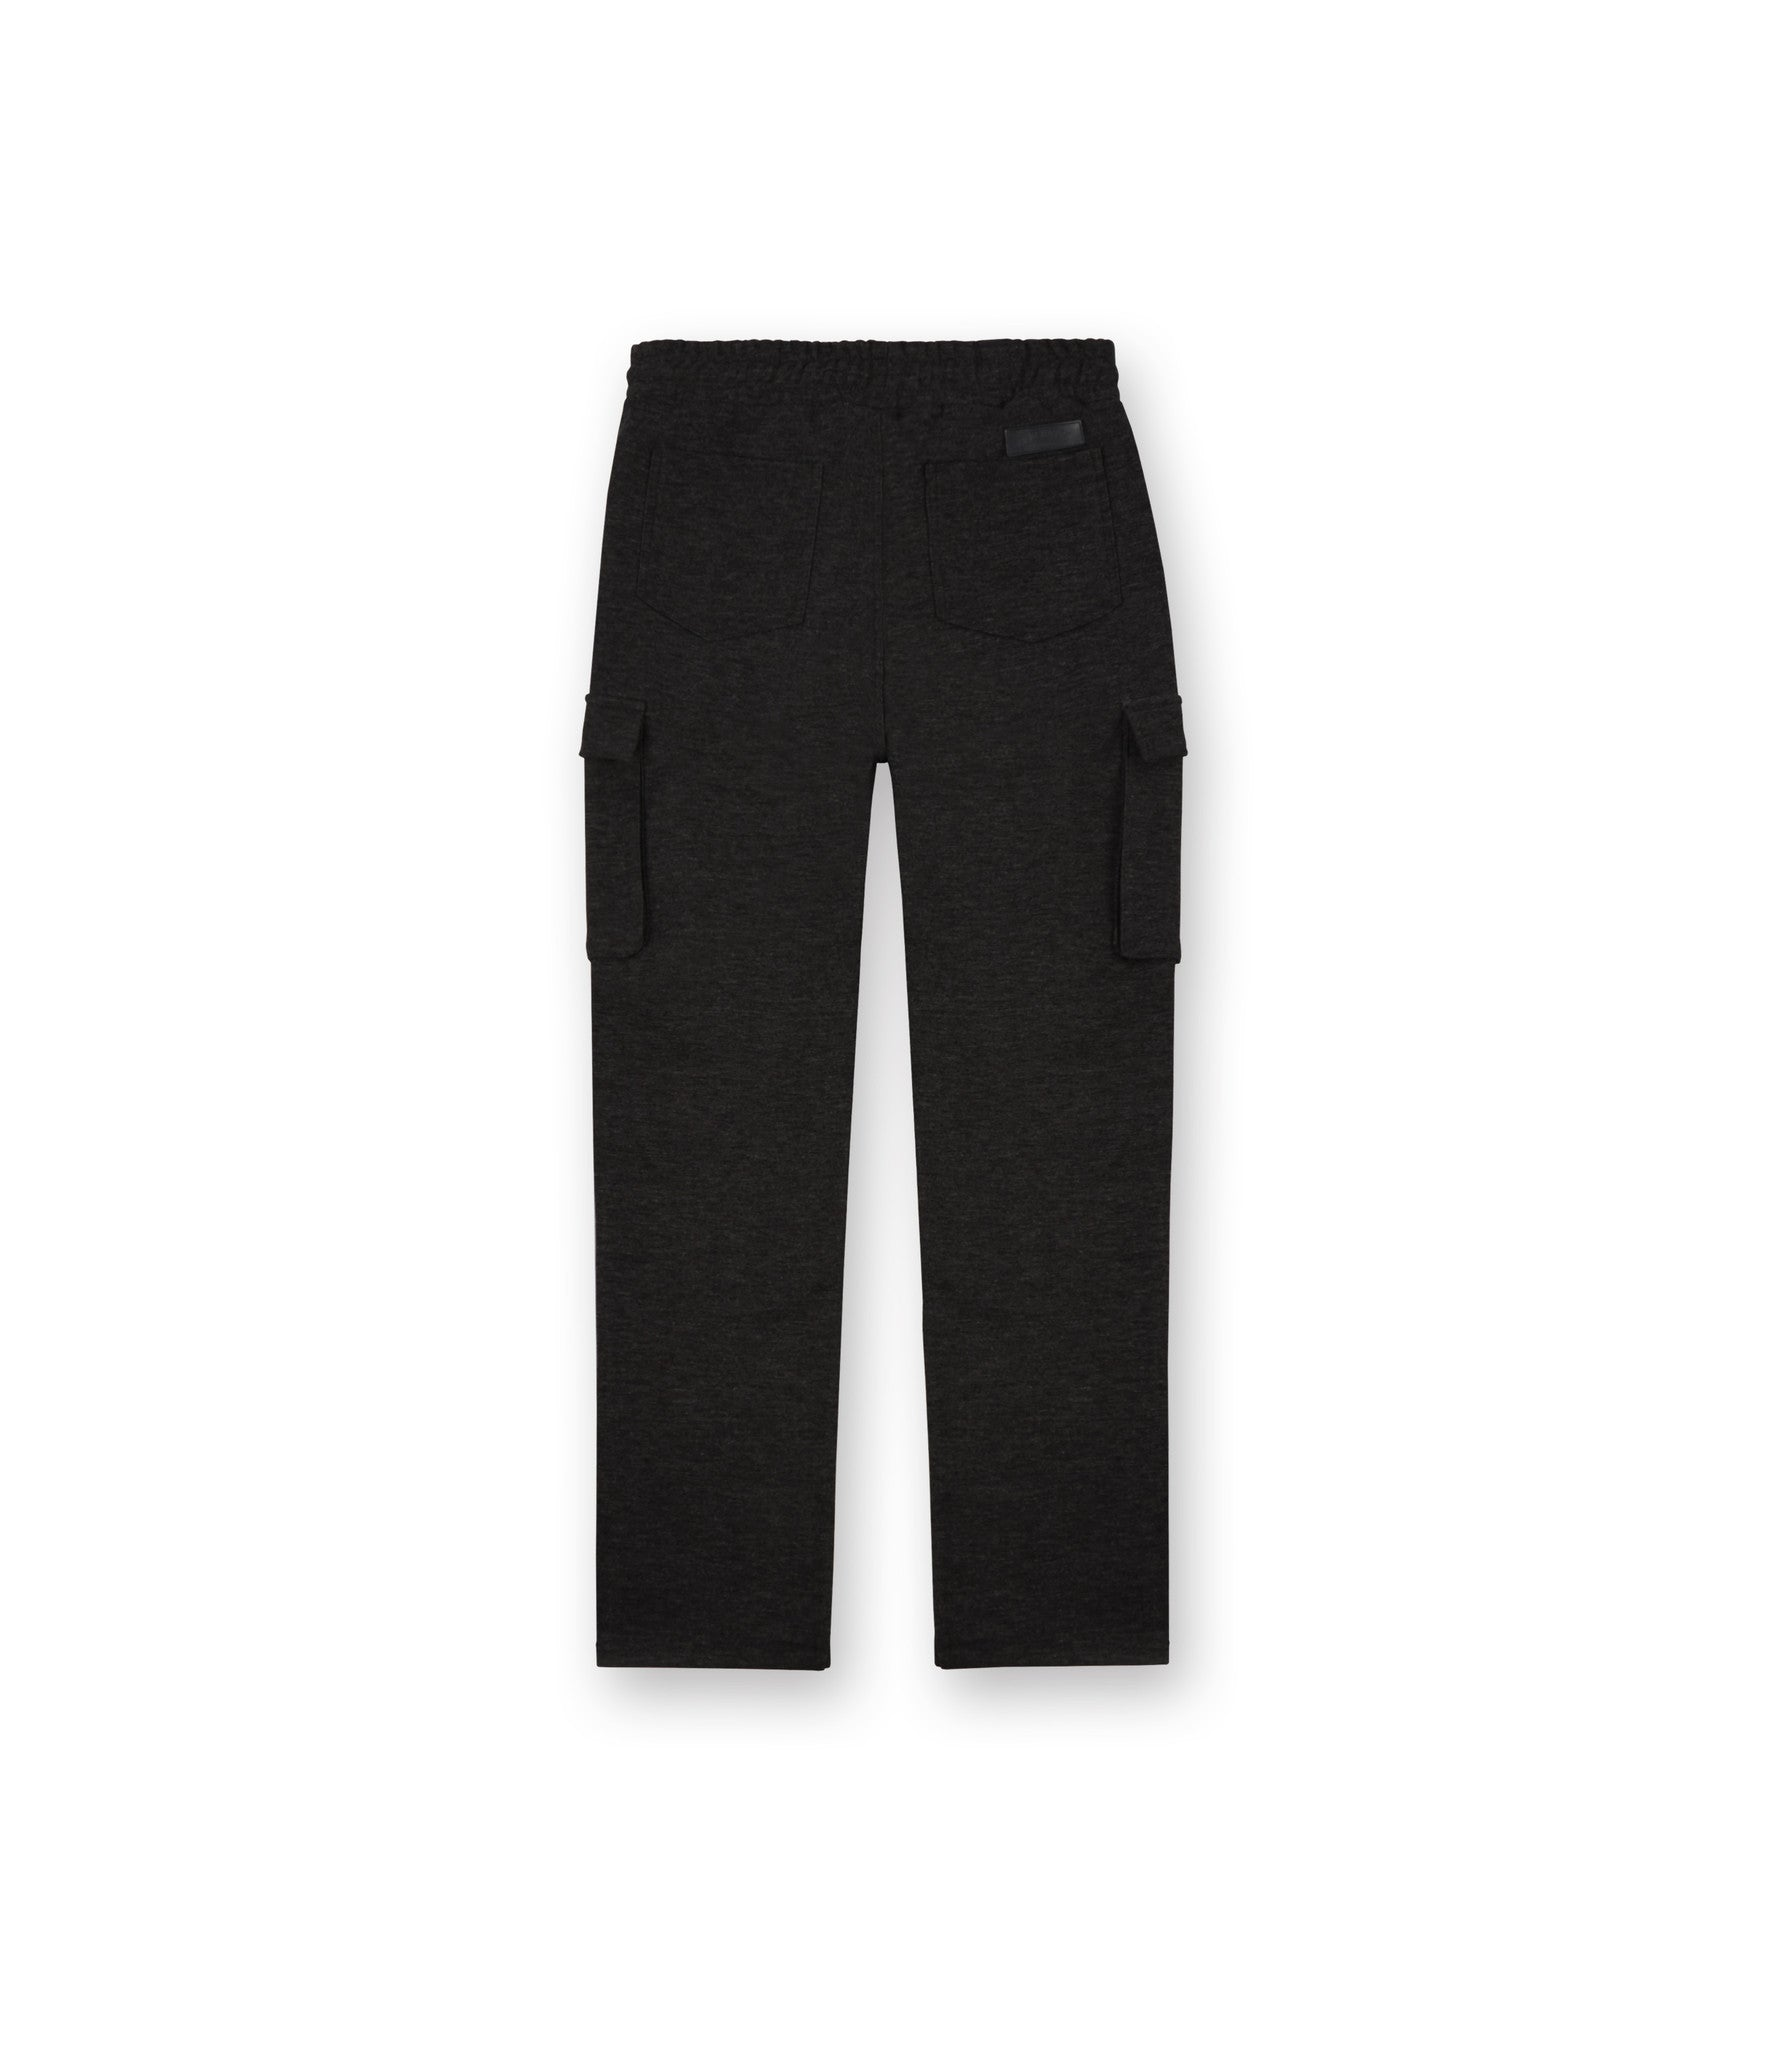 TR253 Wool Blend Cropped Cargo Pants - Black - underated london - underatedco - 3